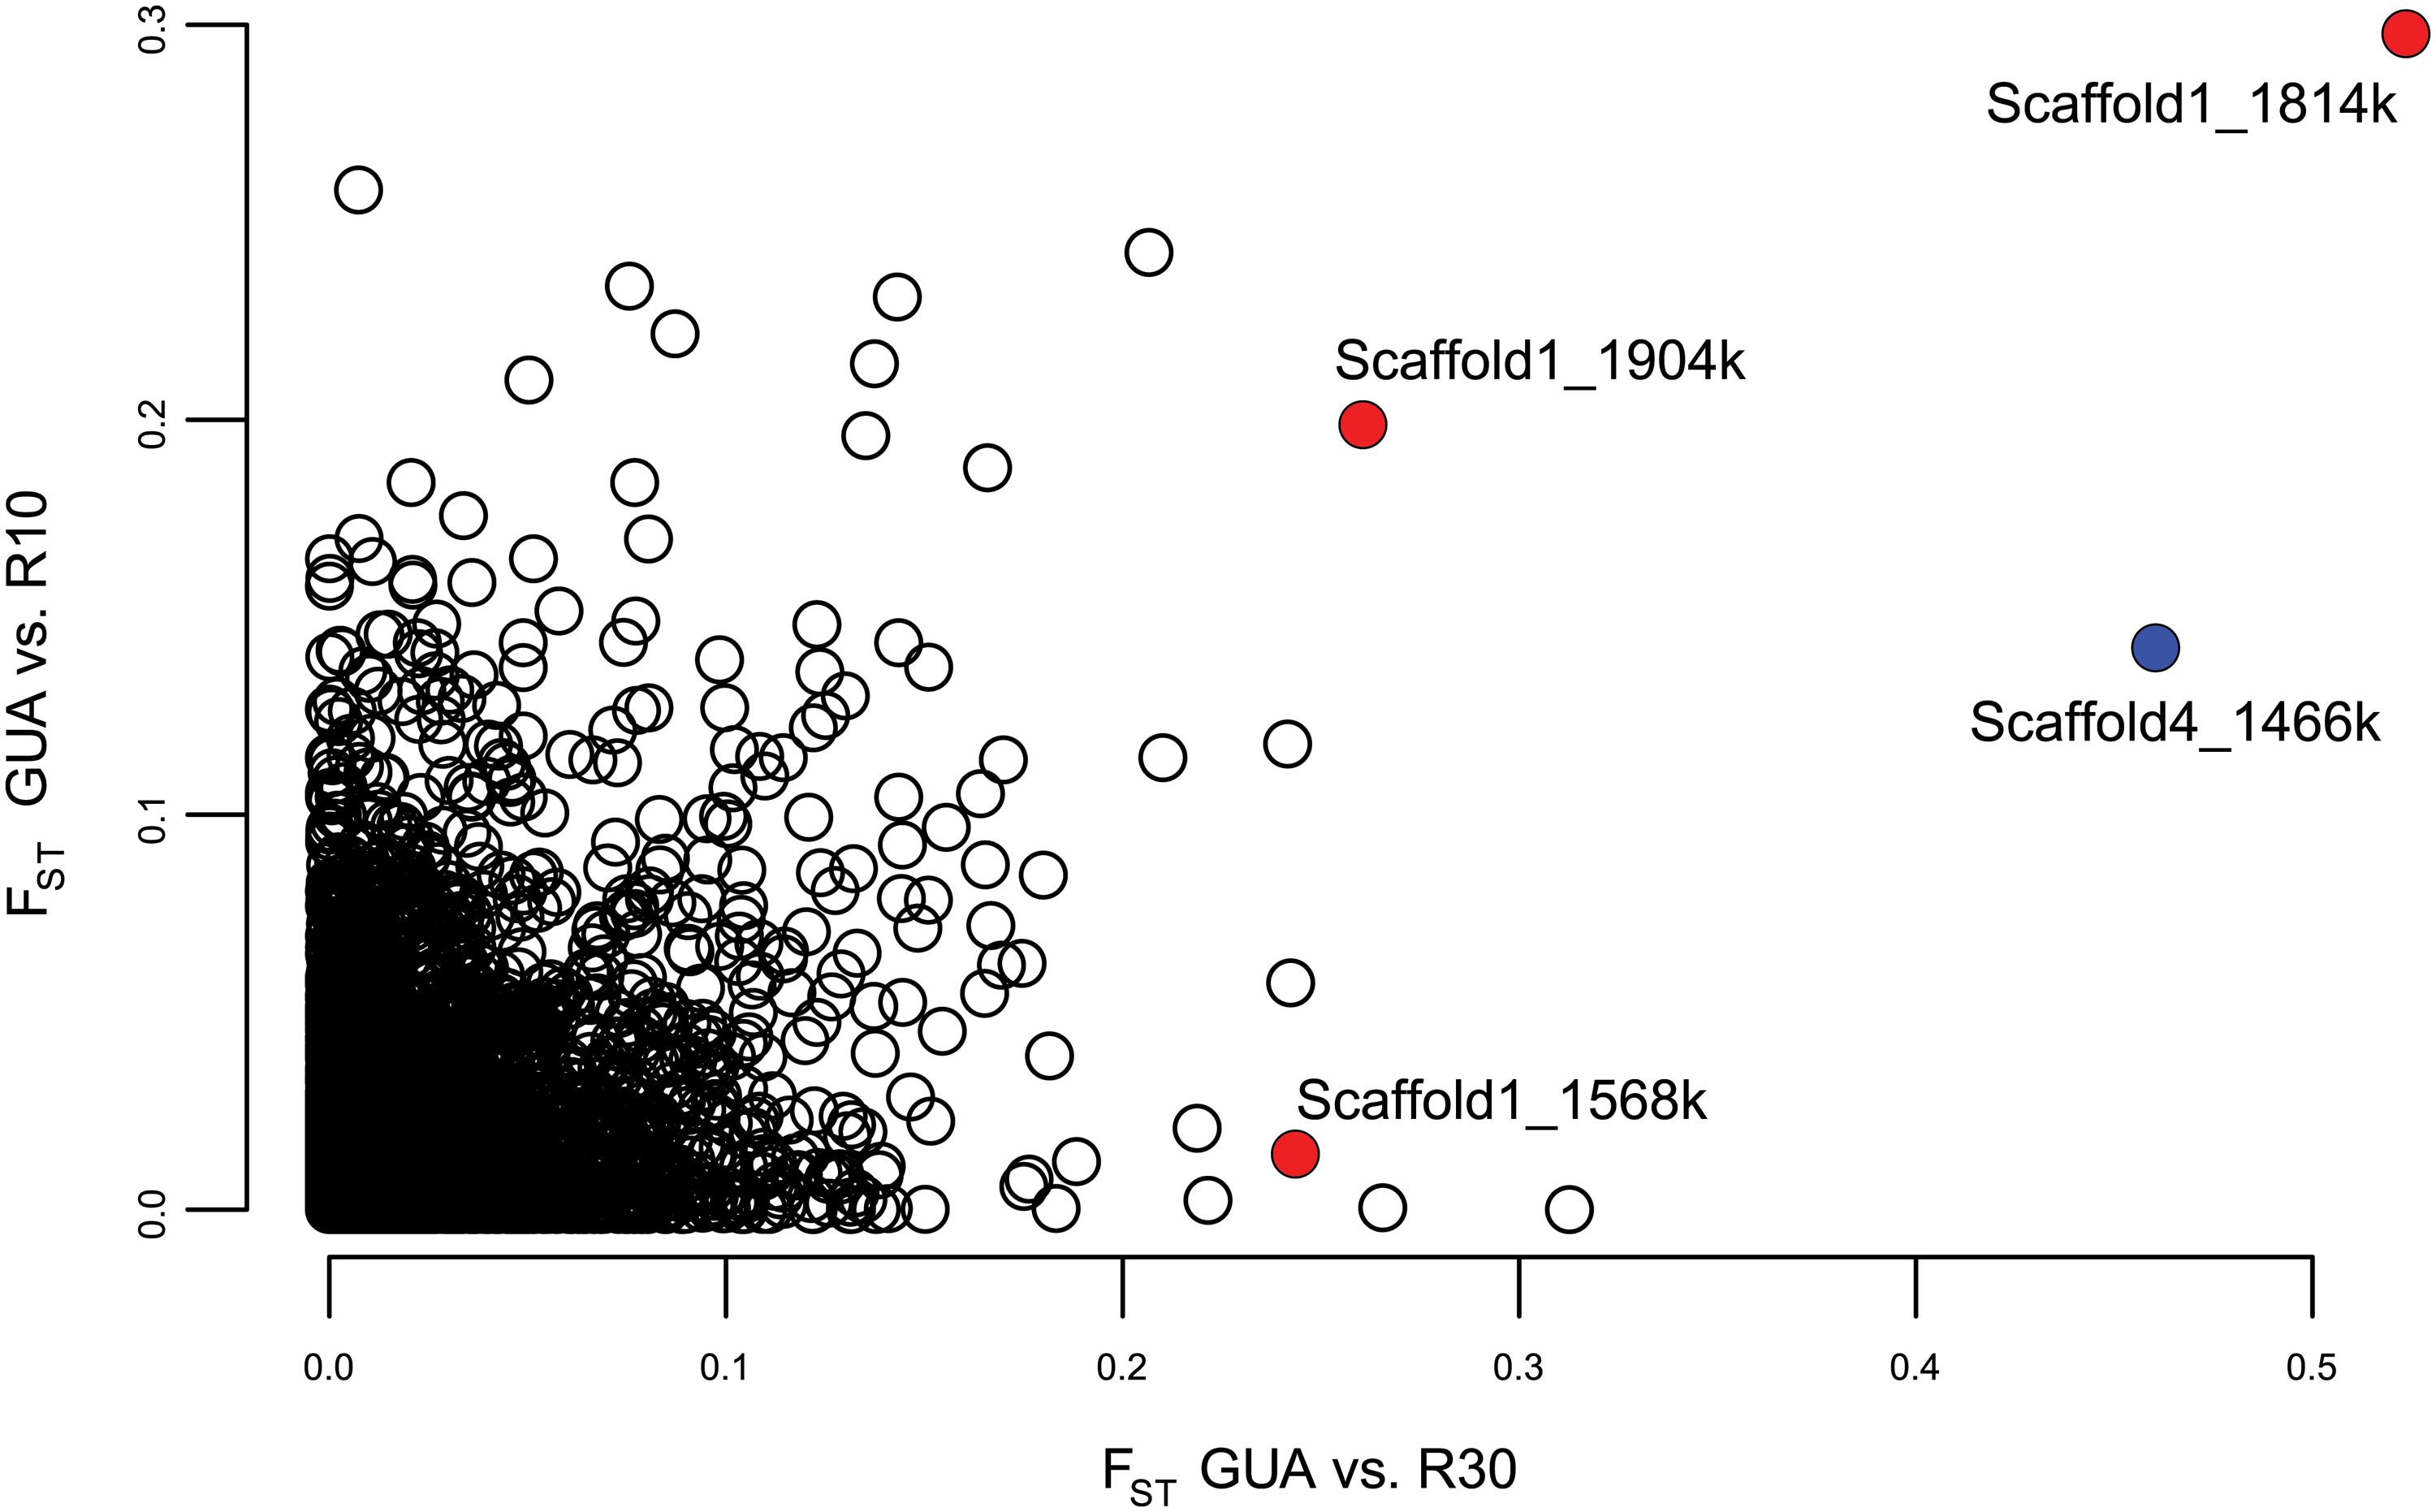 F<sub>ST</sub> values between the unselected control line (GUA) and each selected line (R10 and R30).